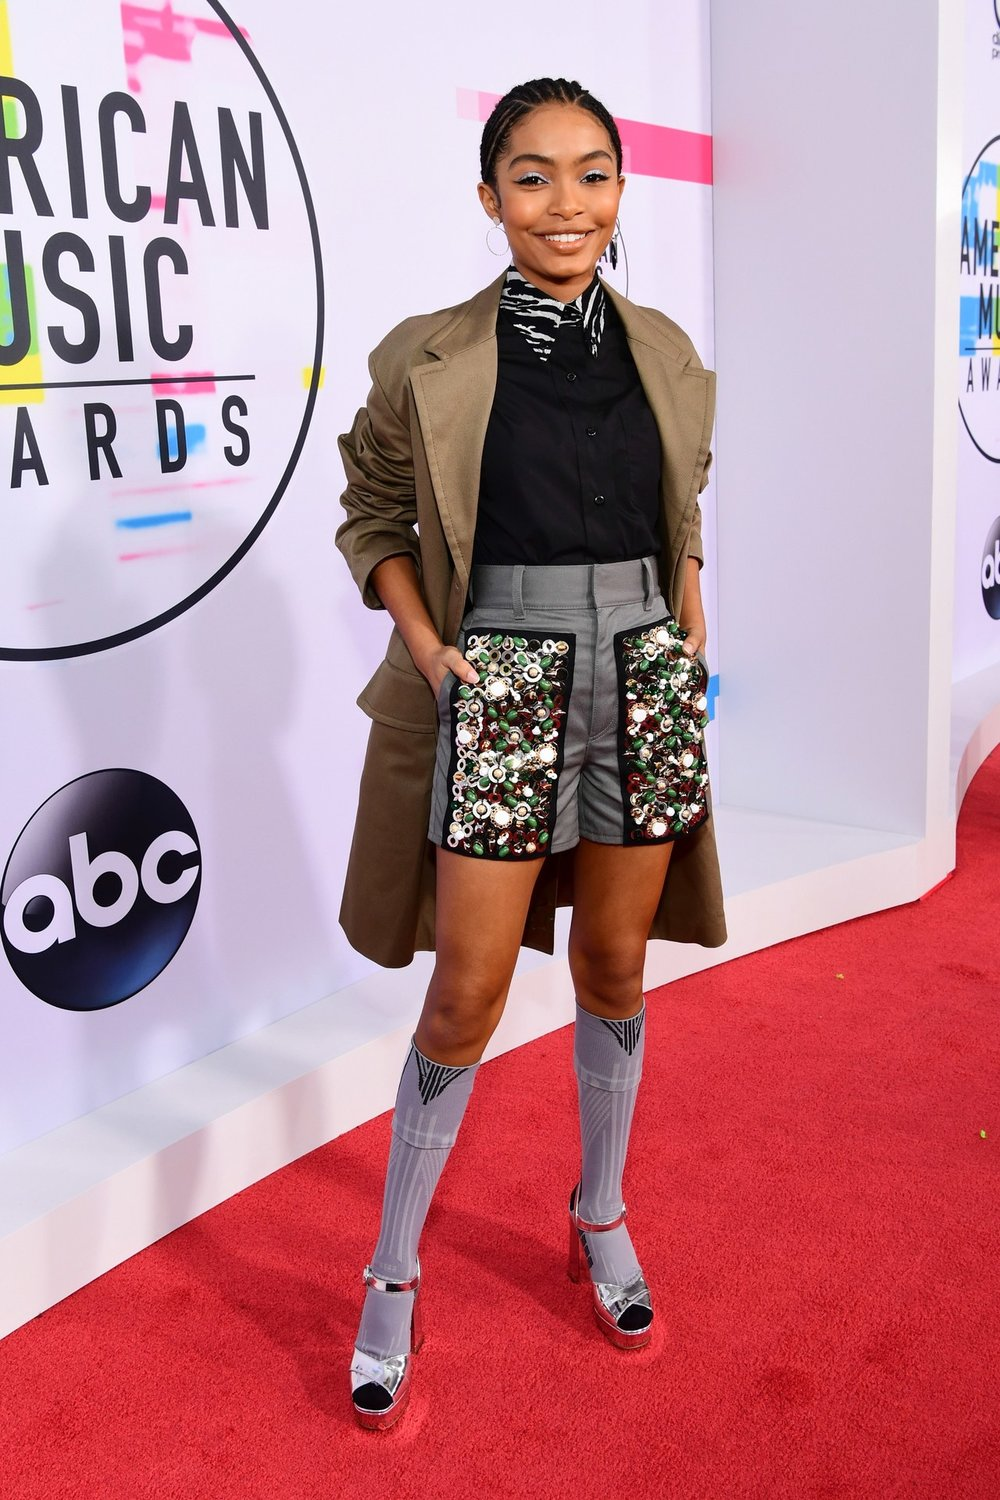 Prada Yara  - Grown-ish Star Yara Shahidi came to cheer on her on-screen mom, Tracee Ellis-Ross, who was hosting the show. Yara is no stranger to setting trends, and hid a message on the back of her coat.